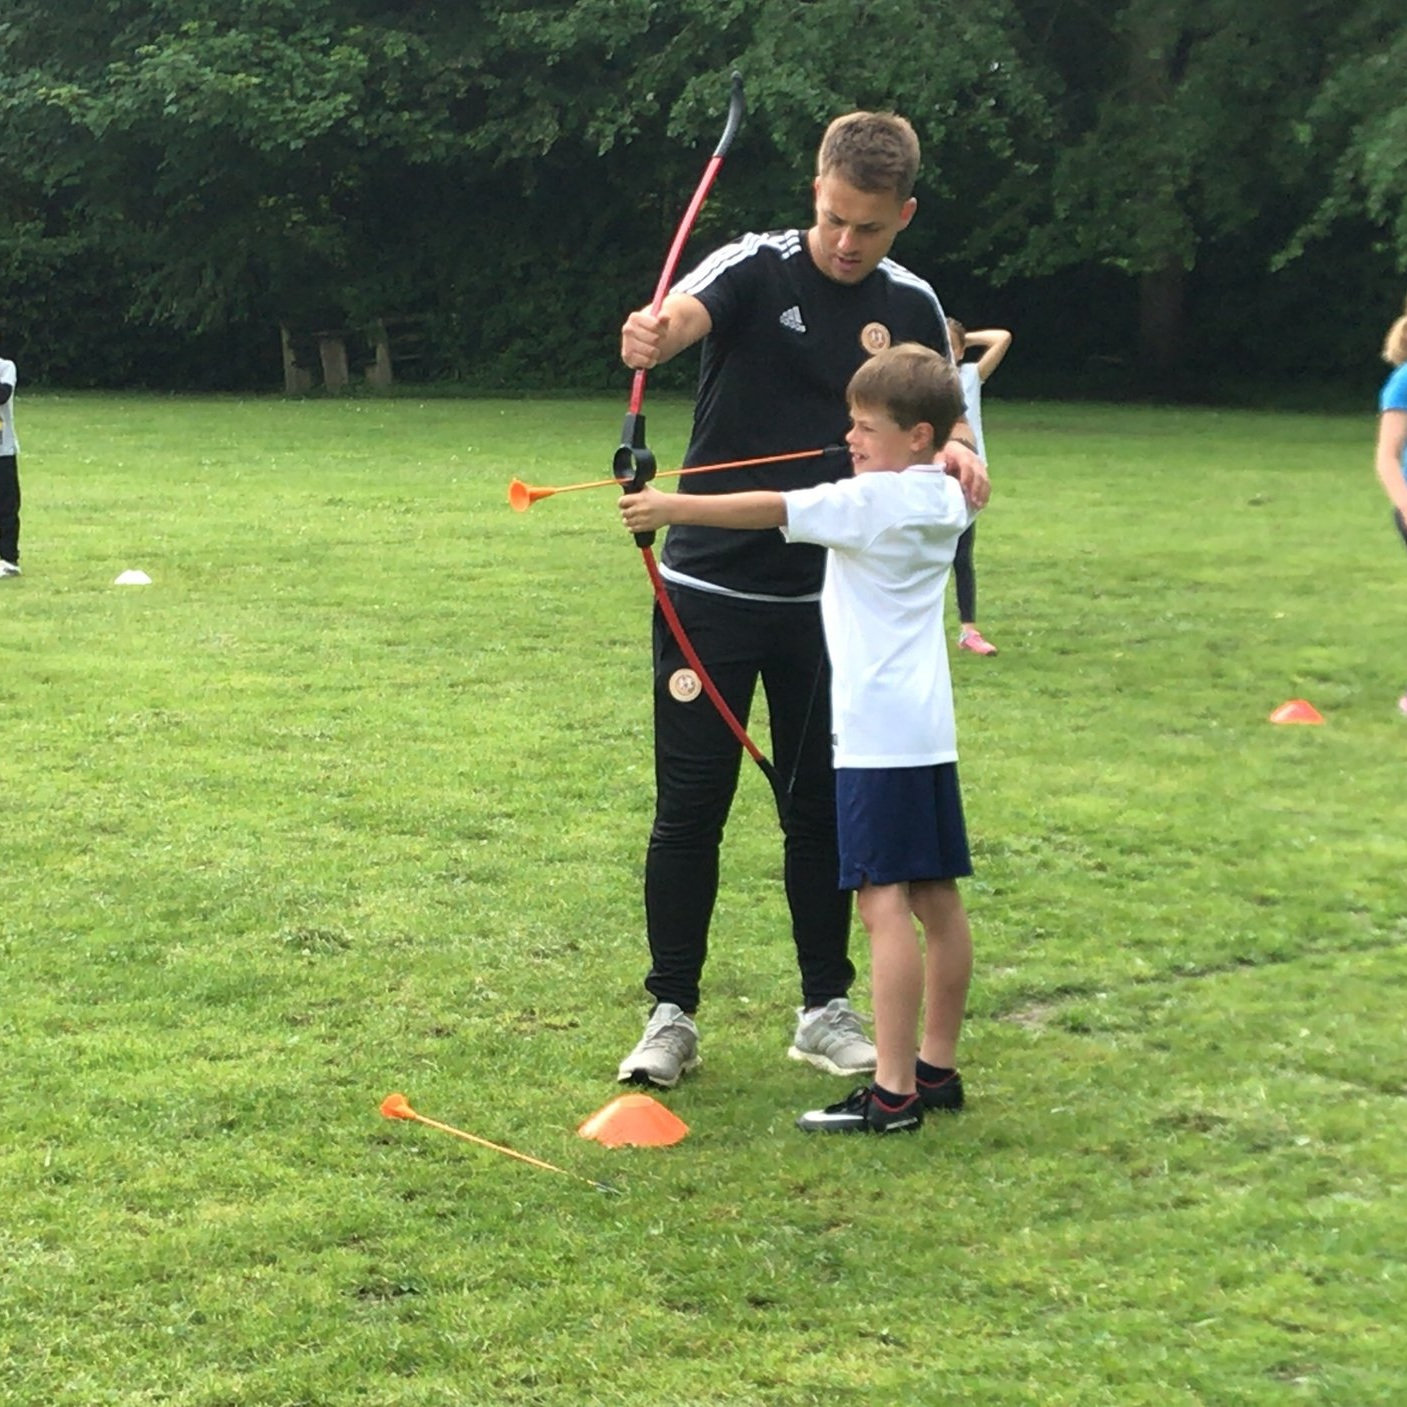 PE SOLUTIONS - We seek to deliver outstanding PE and sports packages which are tailored to your schools needs and inspire, challenge and excite children.